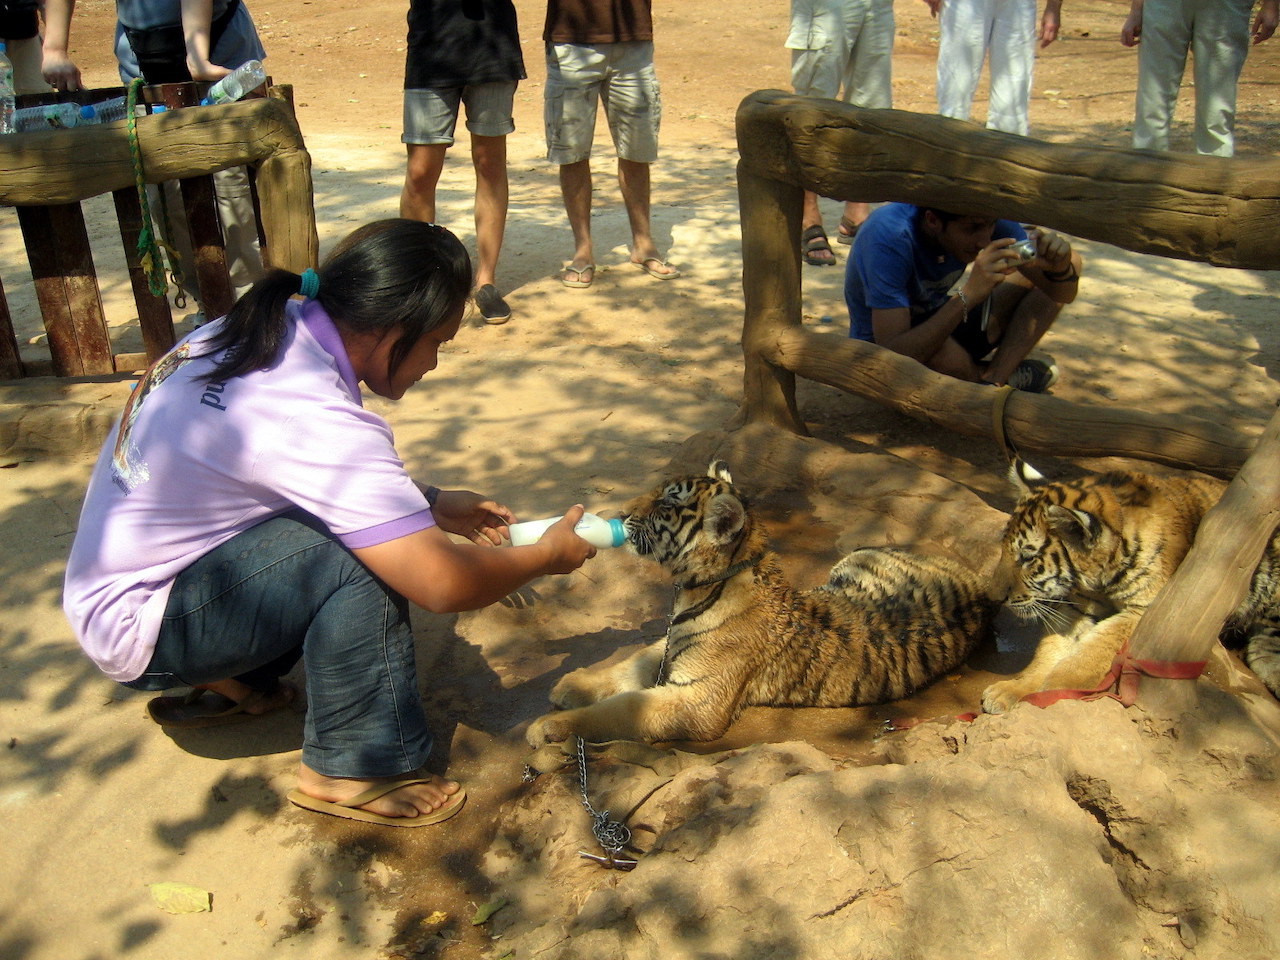 Feeding the Tiger cubs in Thailand Tiger Temple